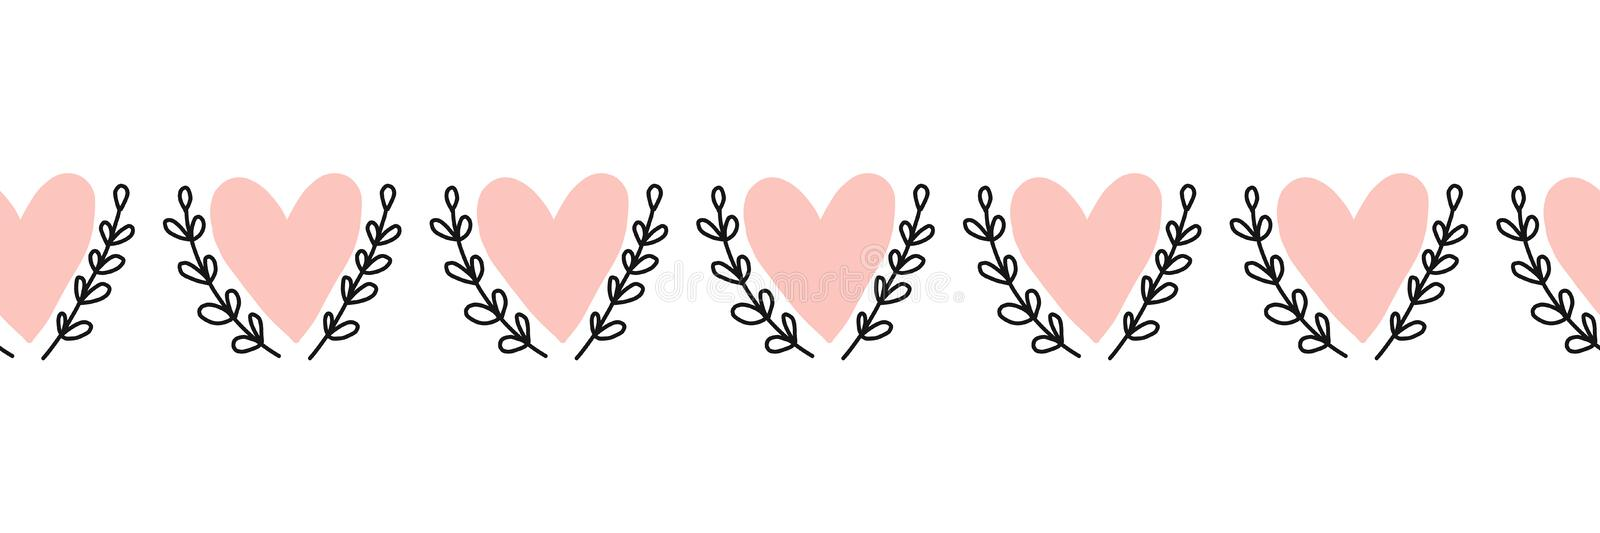 Doodle Hearts seamless vector border hand drawn. Pink heart shapes between leaf branches. Use for Valentines day, card.  stock illustration